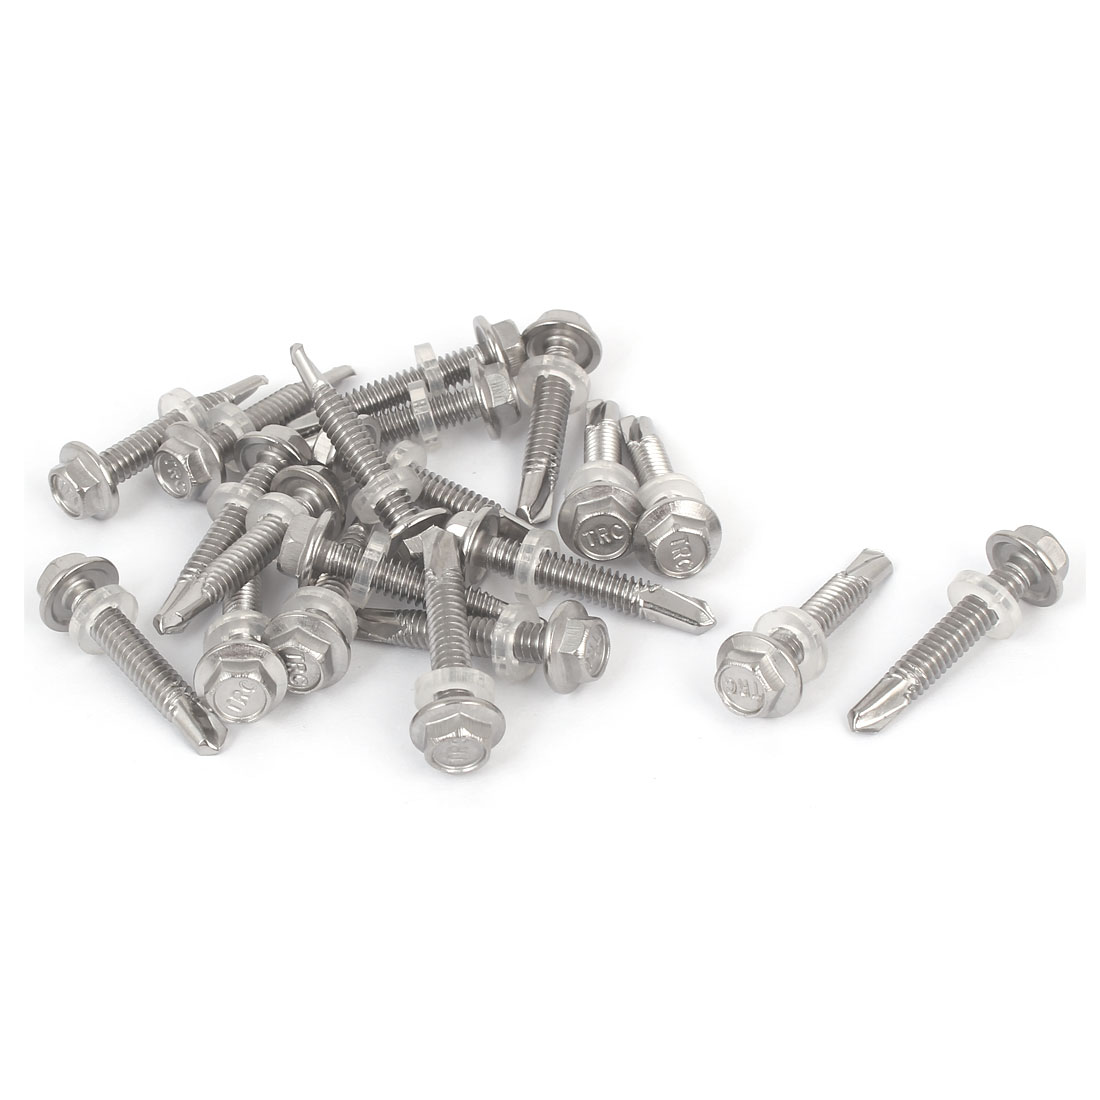 Hex Washer Head Self Tapping Drilling Screw Bolt Silver Tone M5.5x32mm #12-14 Thread 20pcs